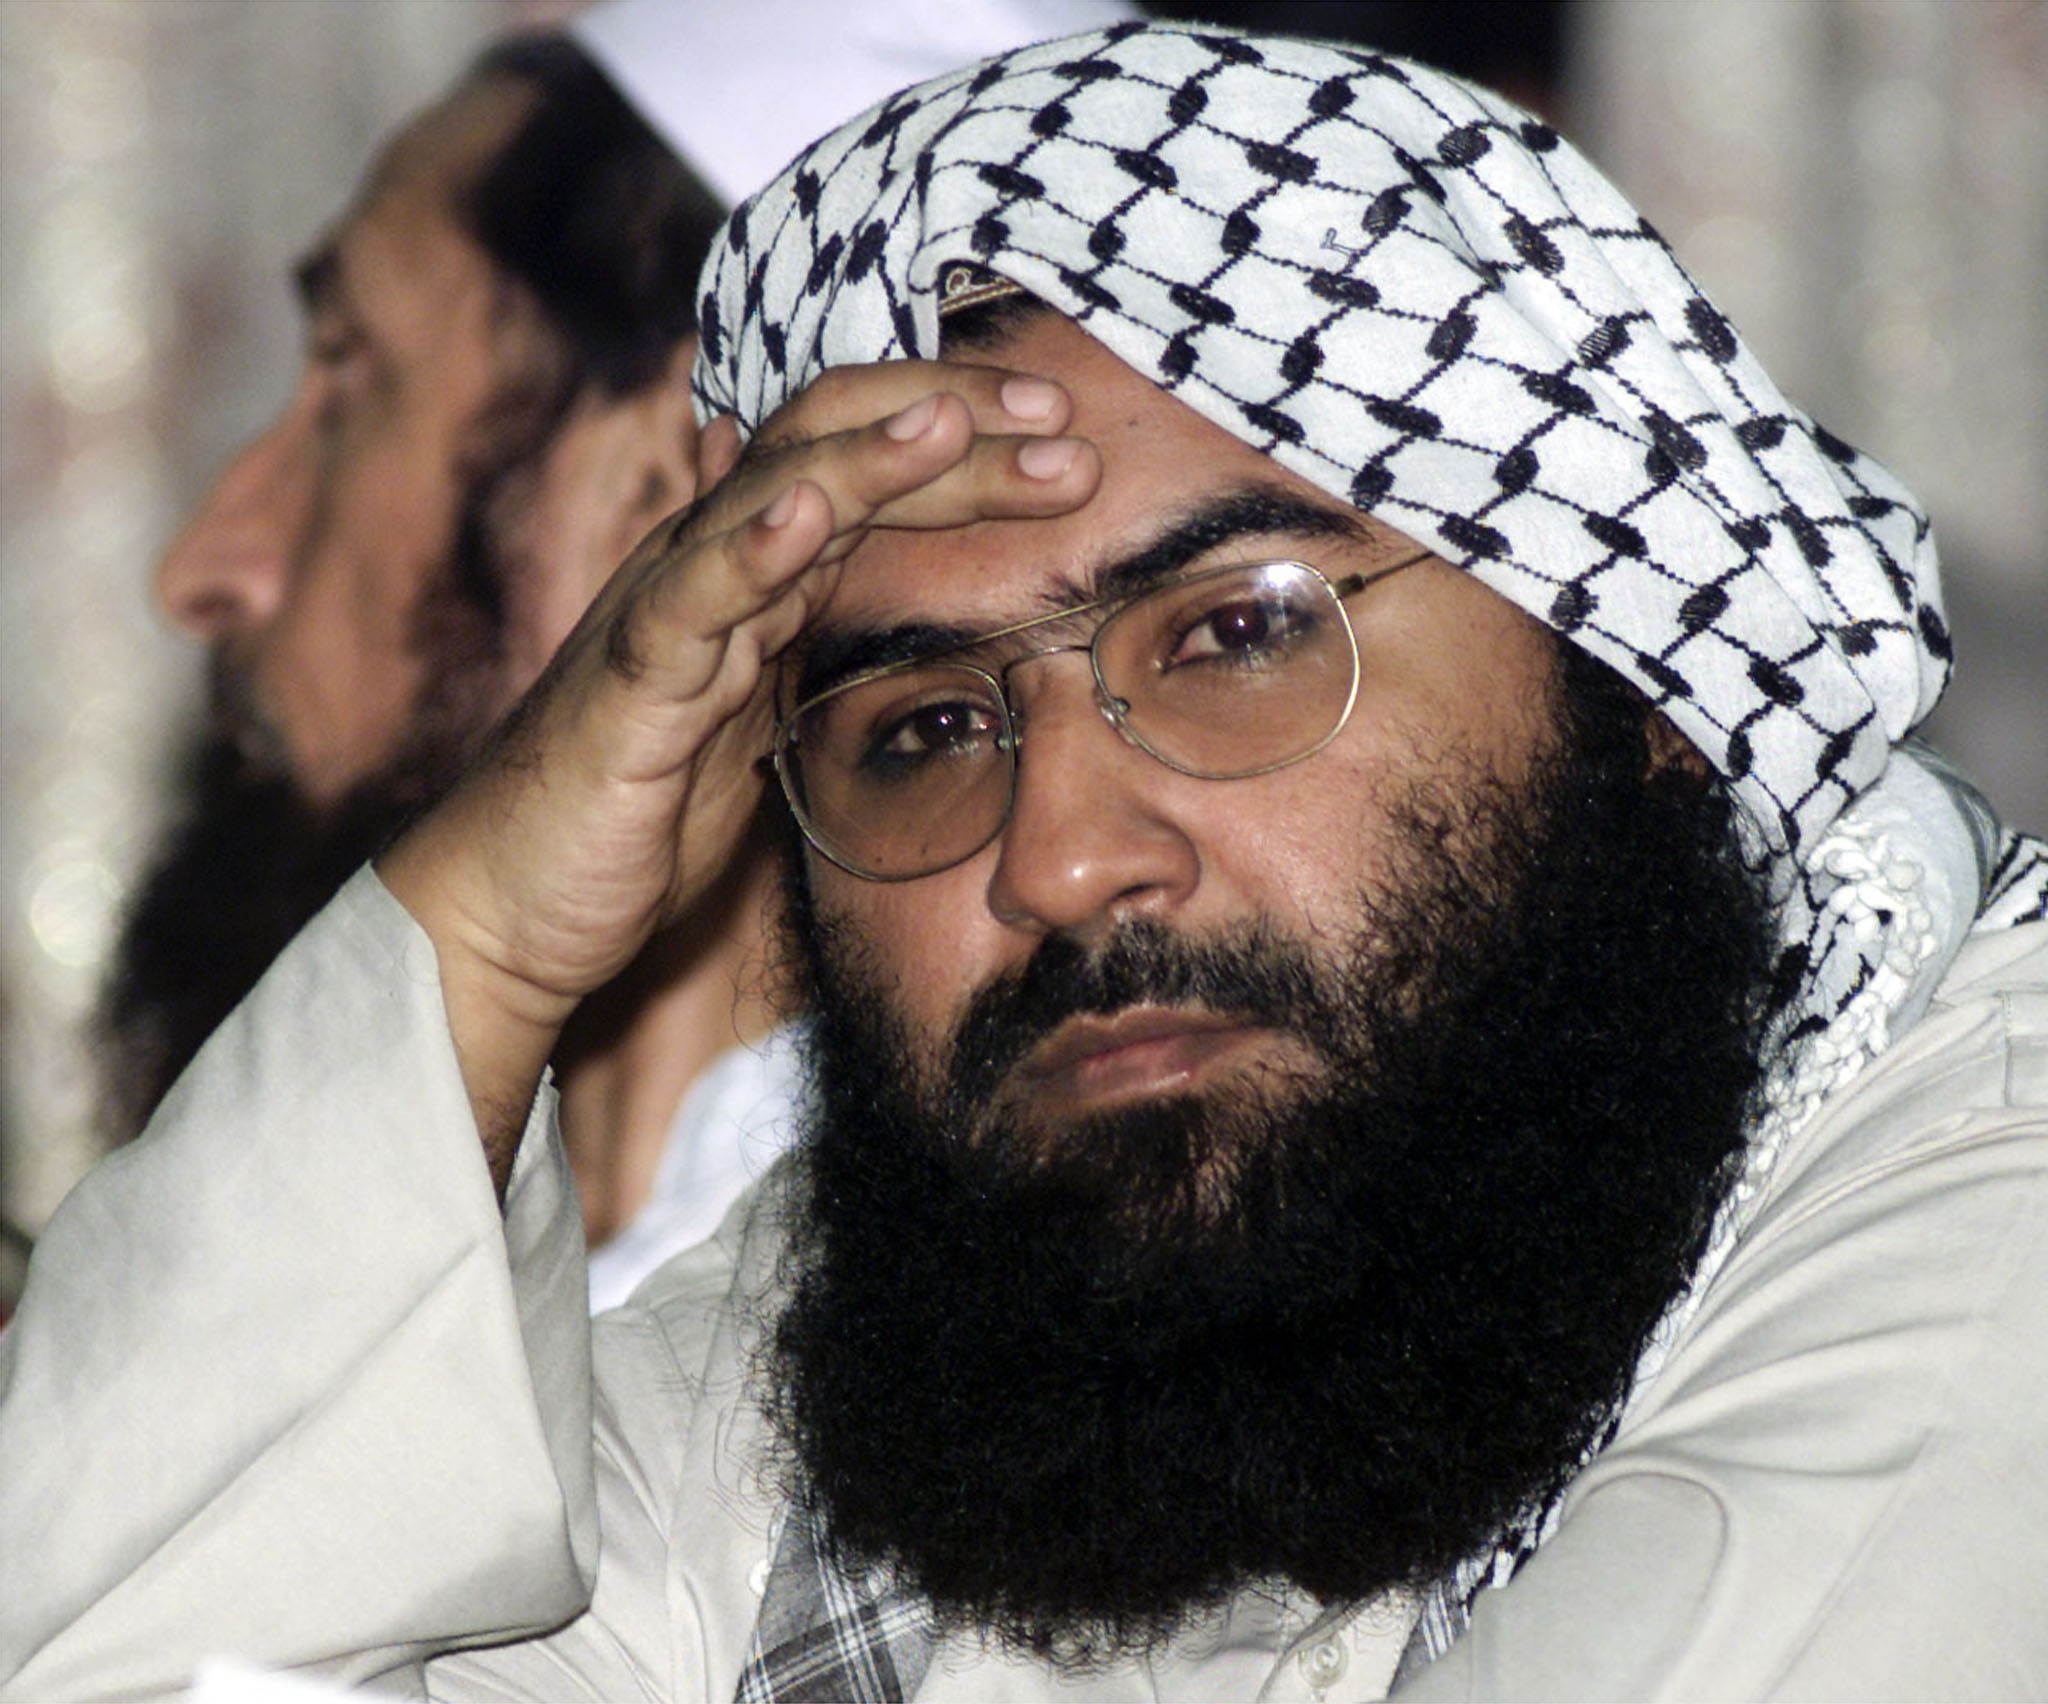 Maulana Masood Azhar, head of Jaish-e-Mohammed. Source: Mian Kursheed/Reuters